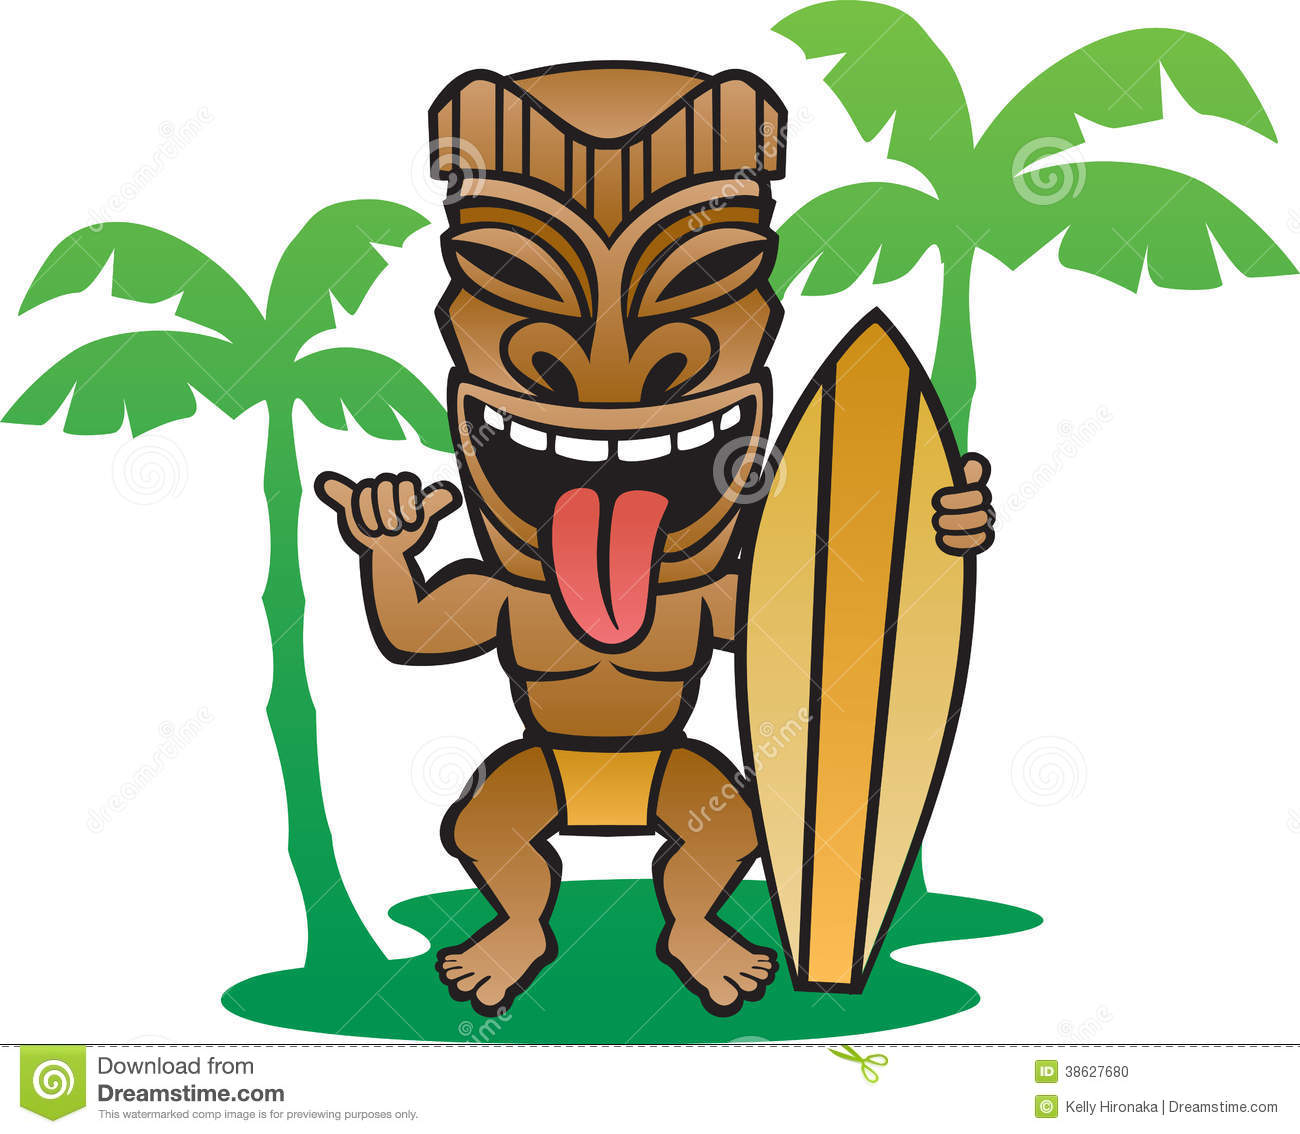 Illustration of a Tiki surfer making the shaka sign.